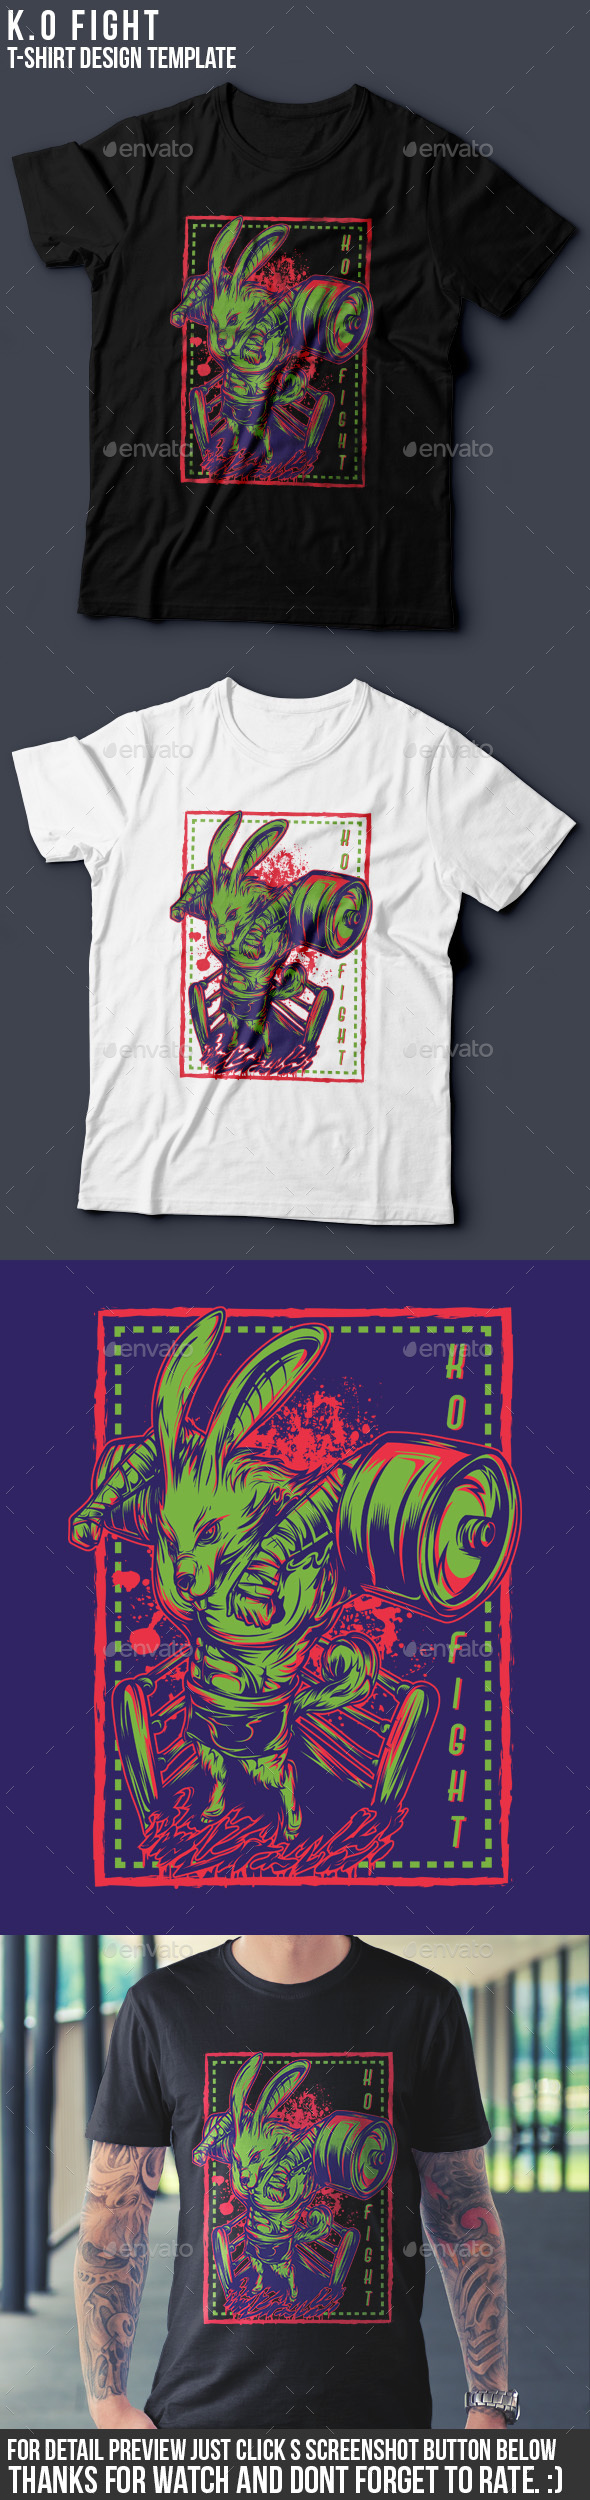 K.O Fight T-Shirt Design - Academic T-Shirts